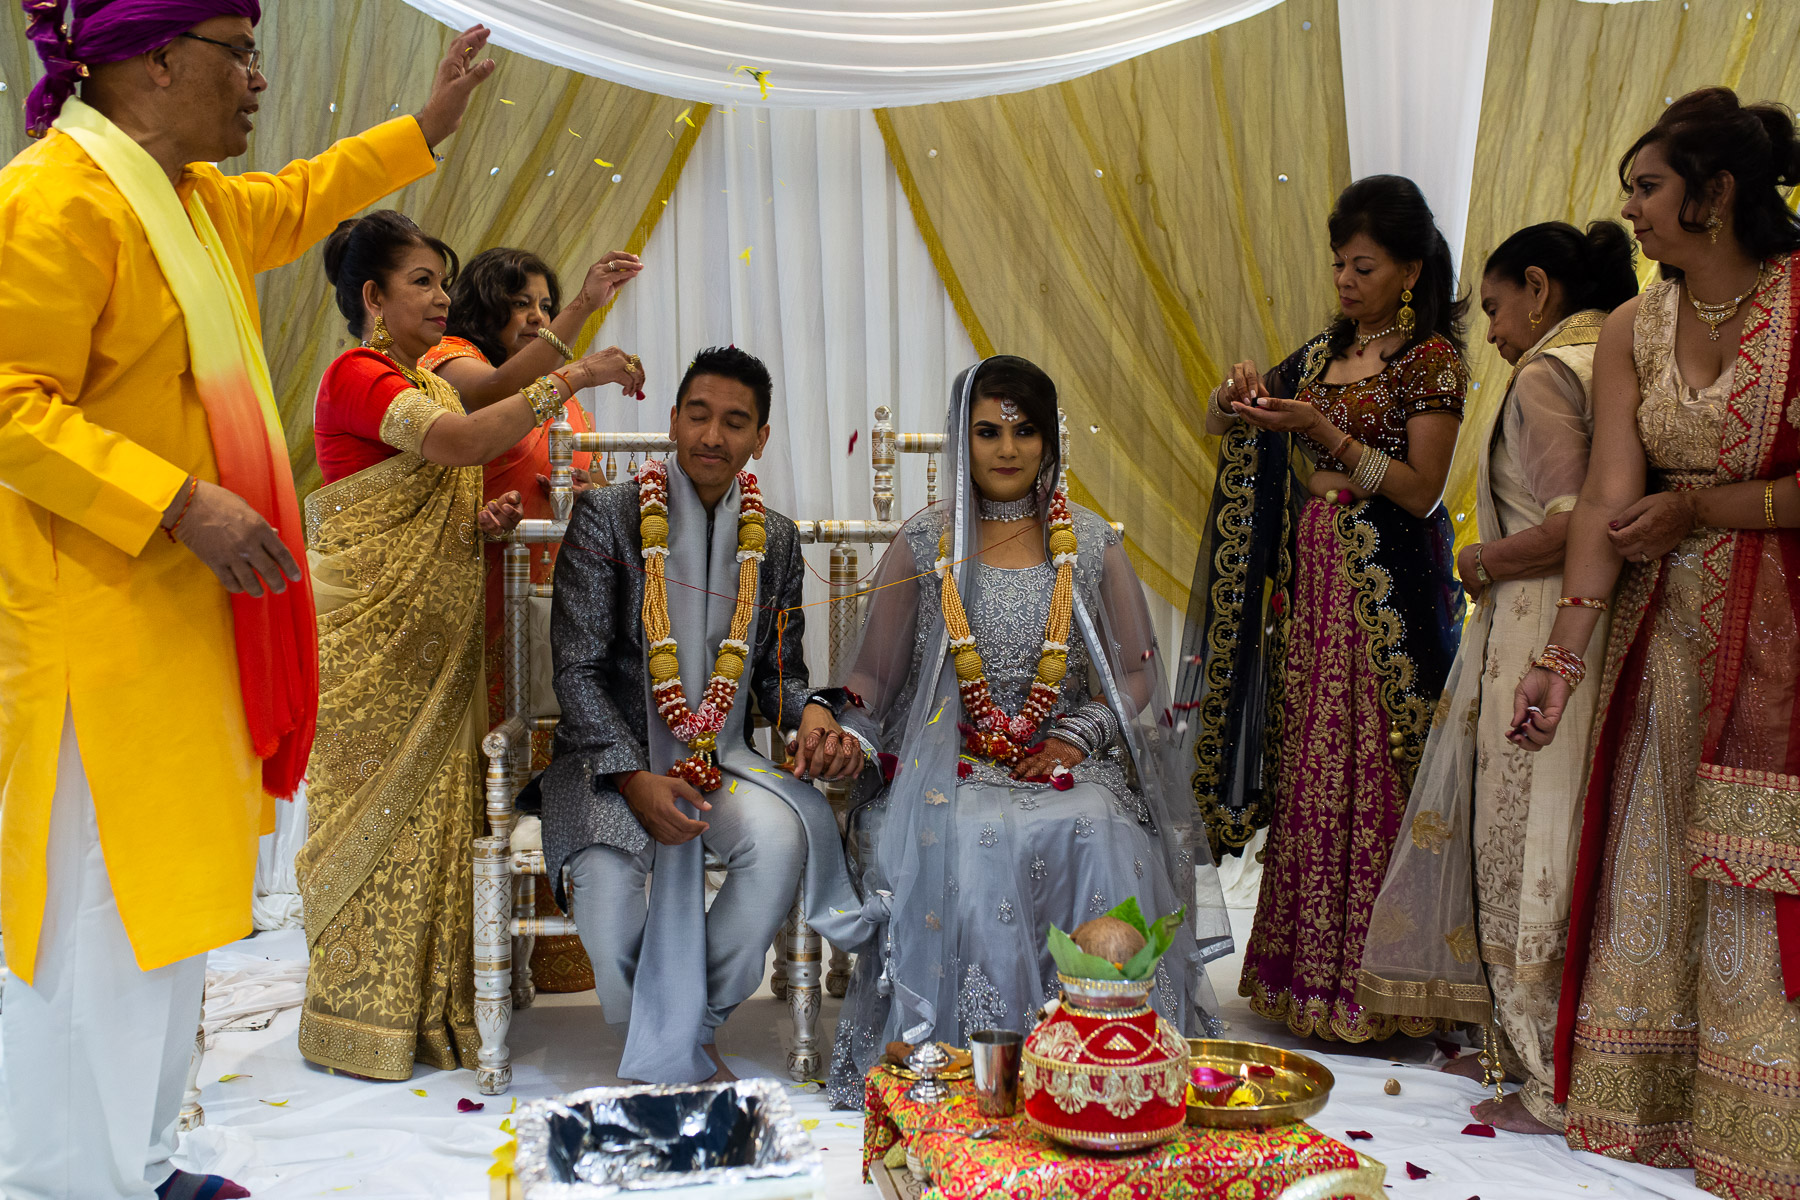 Bride and groom at Asian wedding with family around them